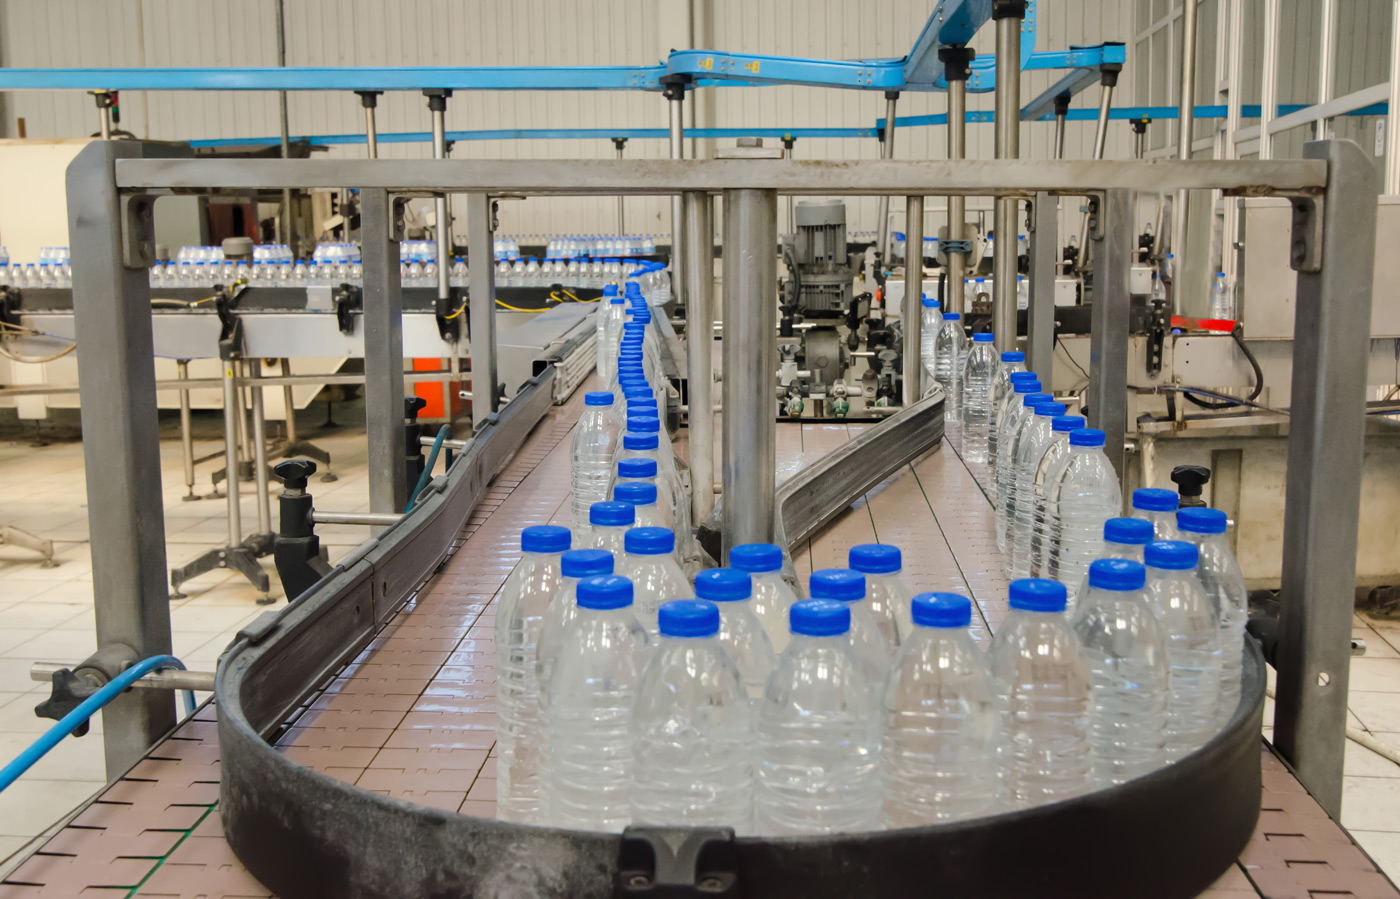 Bottling Industry conveyors spare parts regina chains